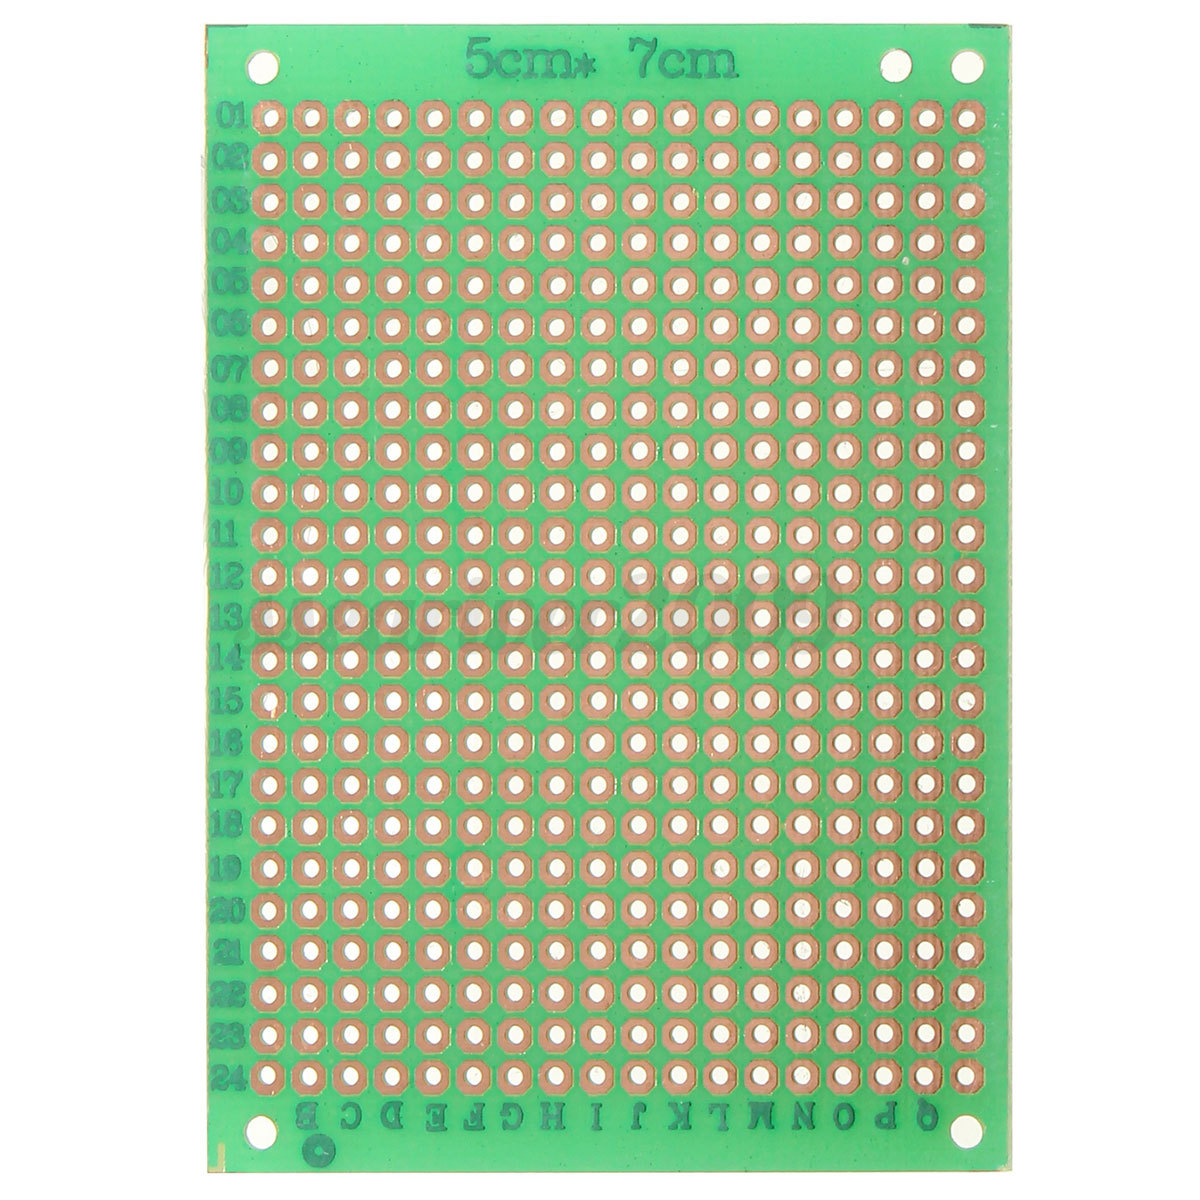 Fr4 Pcb Circuit Board Prototyping Prototype Stripboard Lrdkj